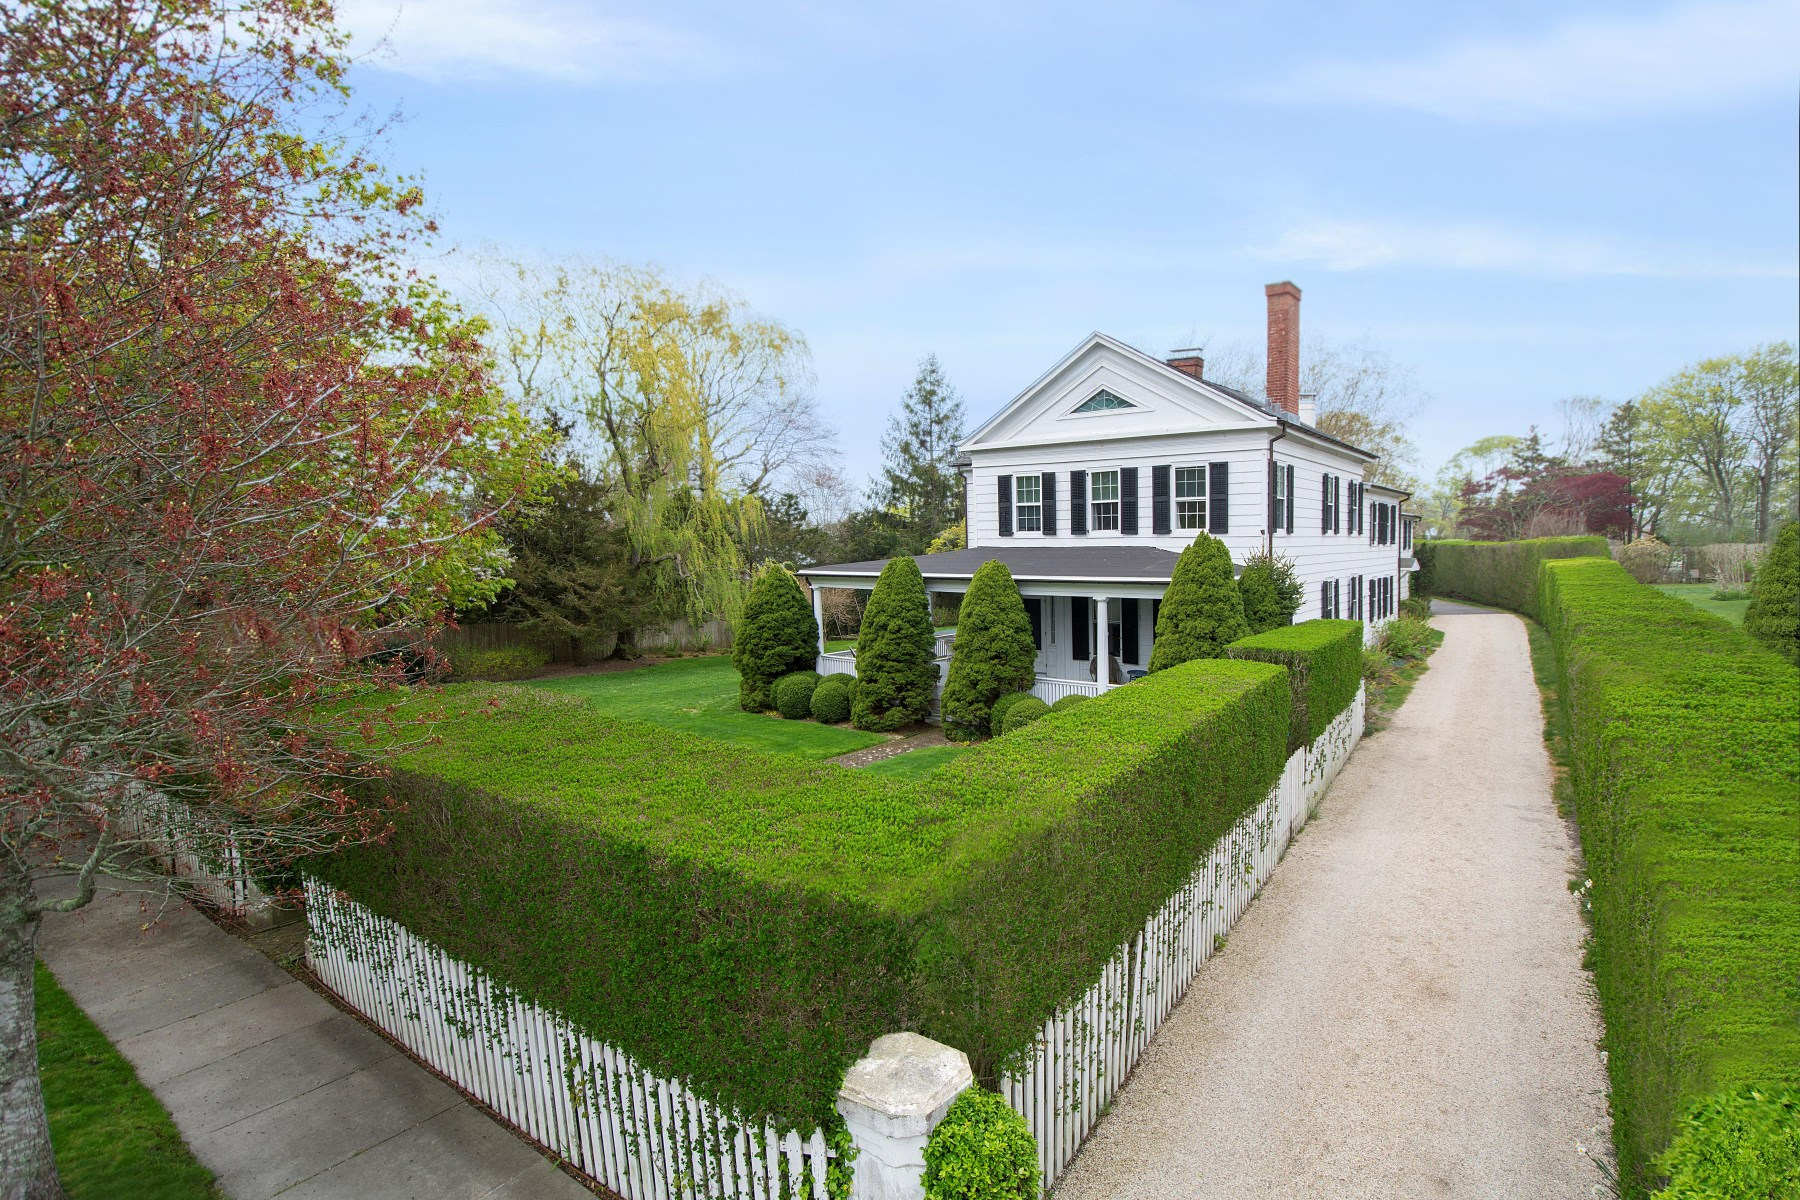 rentals property at Fairfield Porter's Historic Village Home